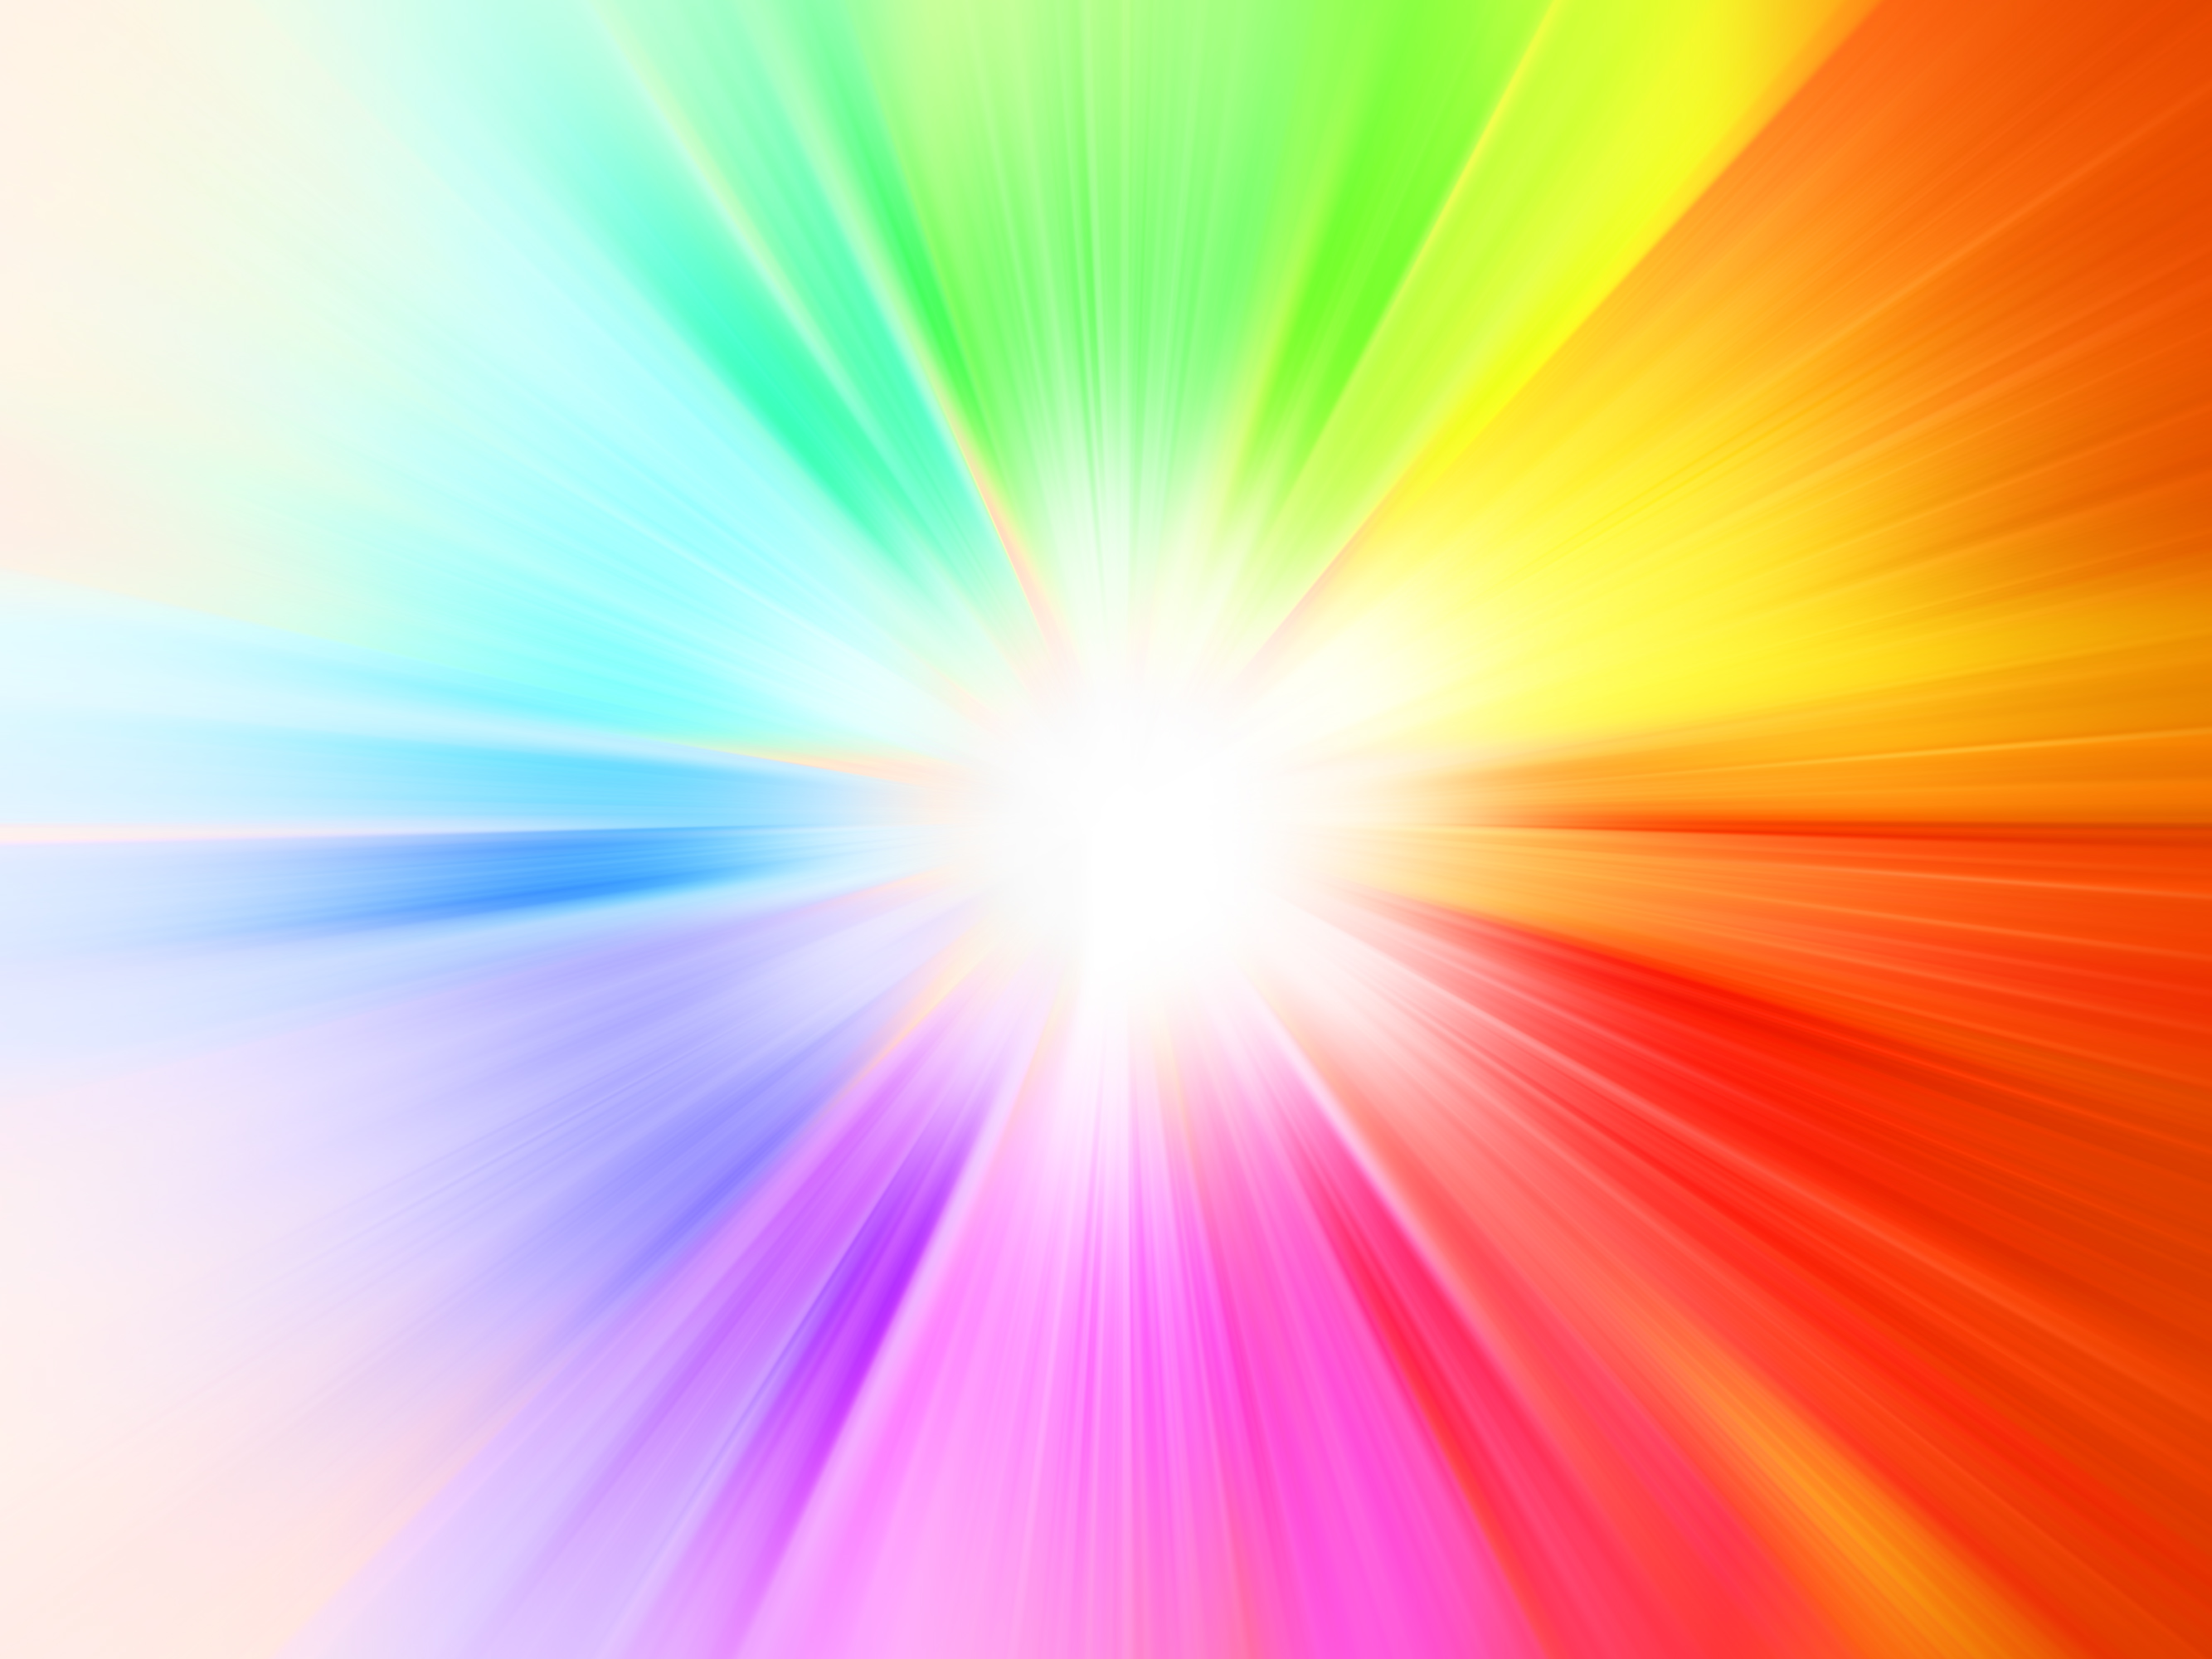 Abstract colors gradient ppt backgrounds abstract colors gradient abstract colors gradient voltagebd Choice Image